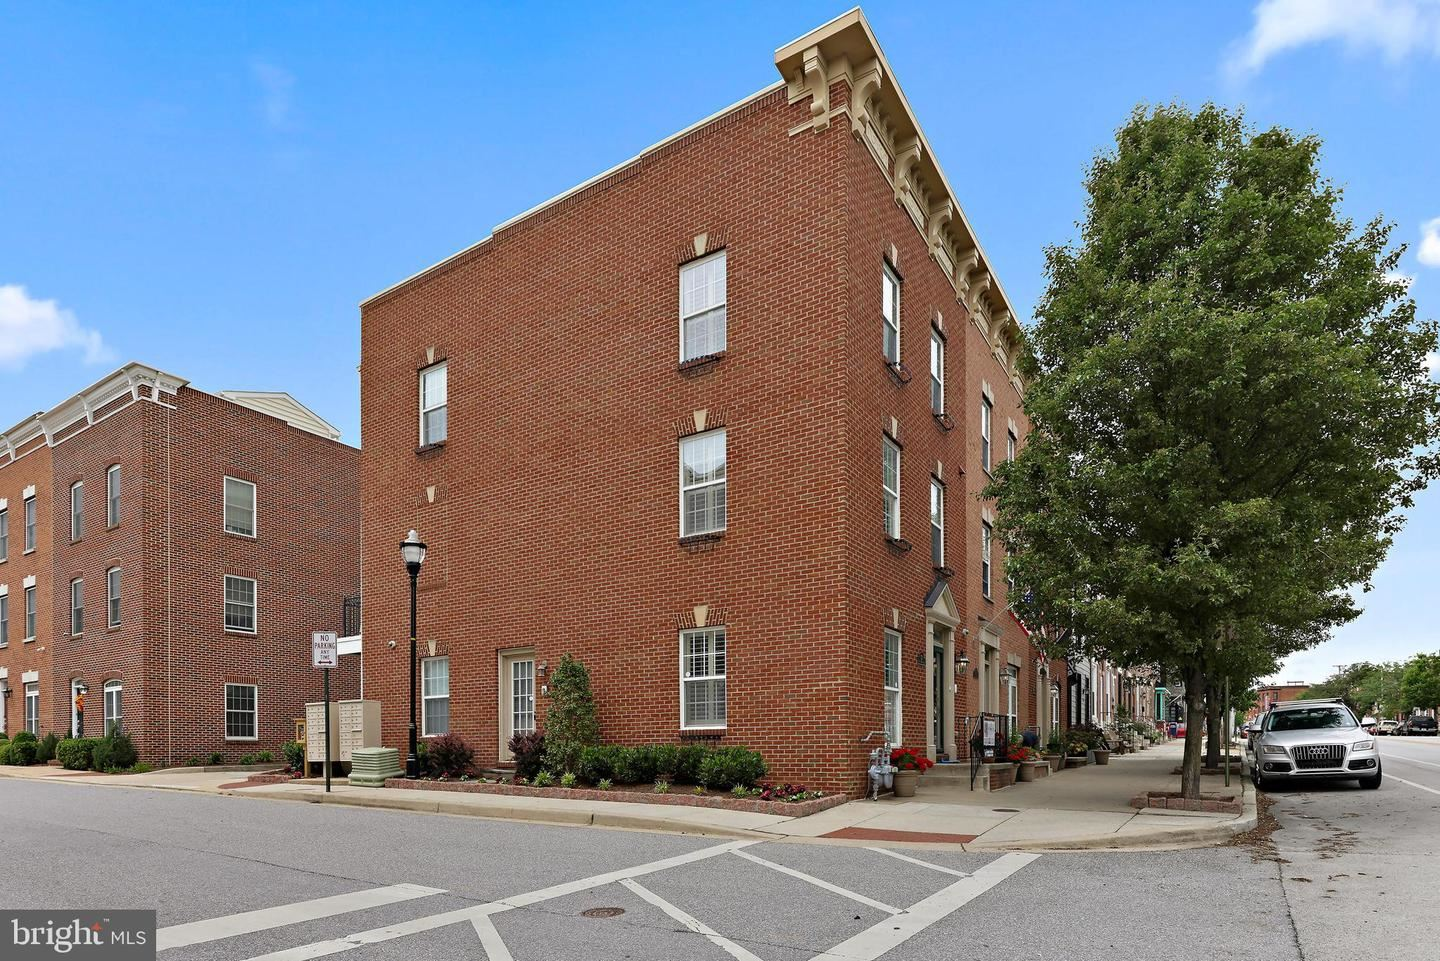 723 E FORT AVE, Baltimore, MD 21230 - MLS#: MDBA548314